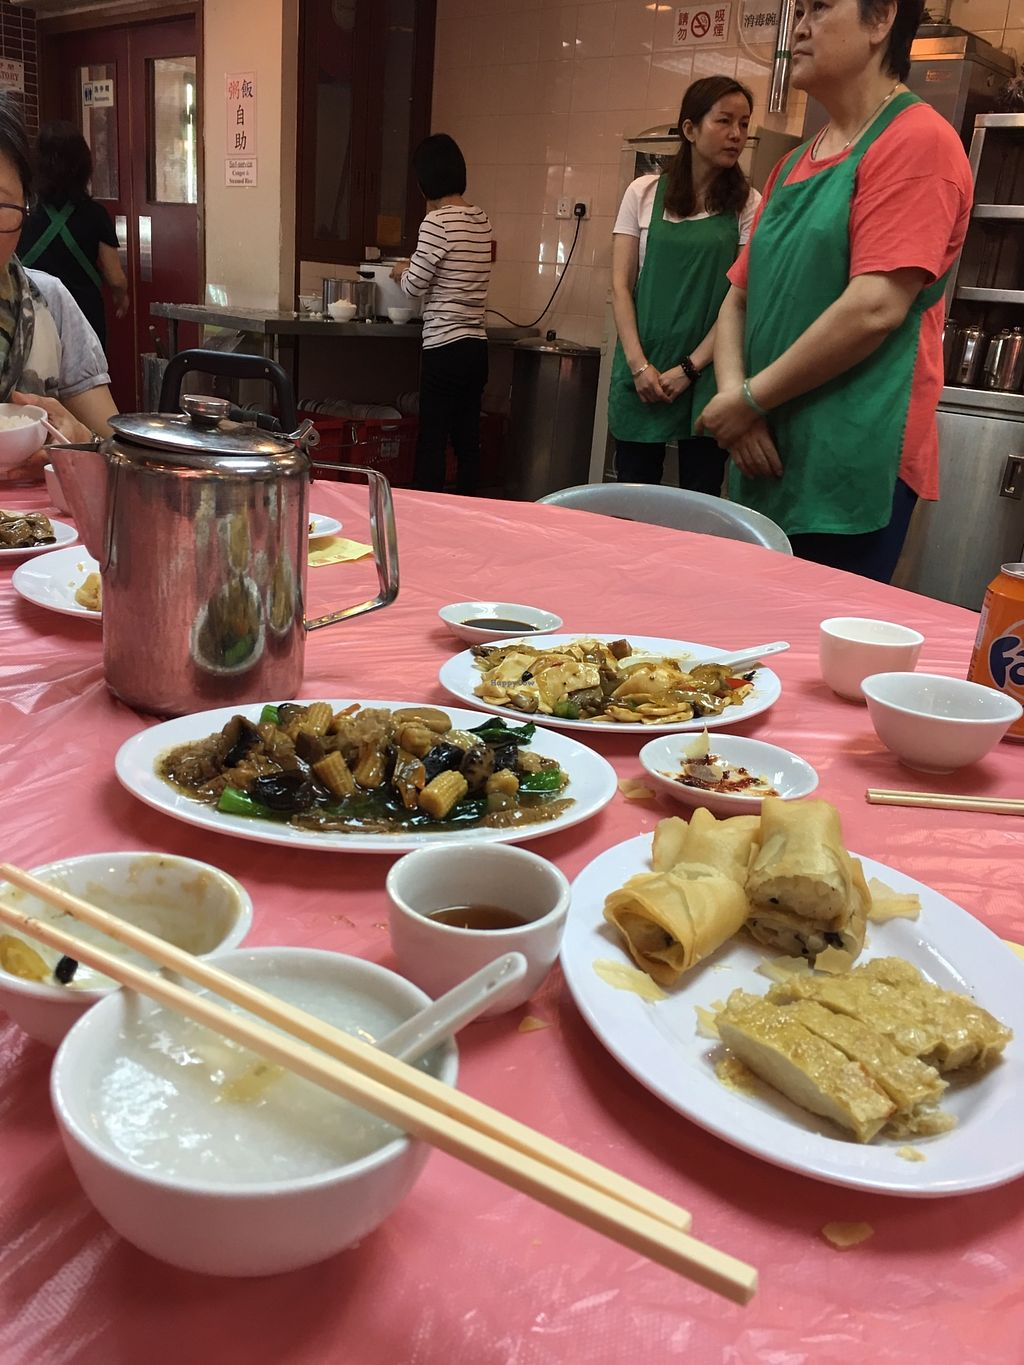 """Photo of Fung Ying Seen Koon Vegetarian Kitchen  by <a href=""""/members/profile/BobbiChina"""">BobbiChina</a> <br/>Our meal <br/> April 5, 2018  - <a href='/contact/abuse/image/51563/381056'>Report</a>"""